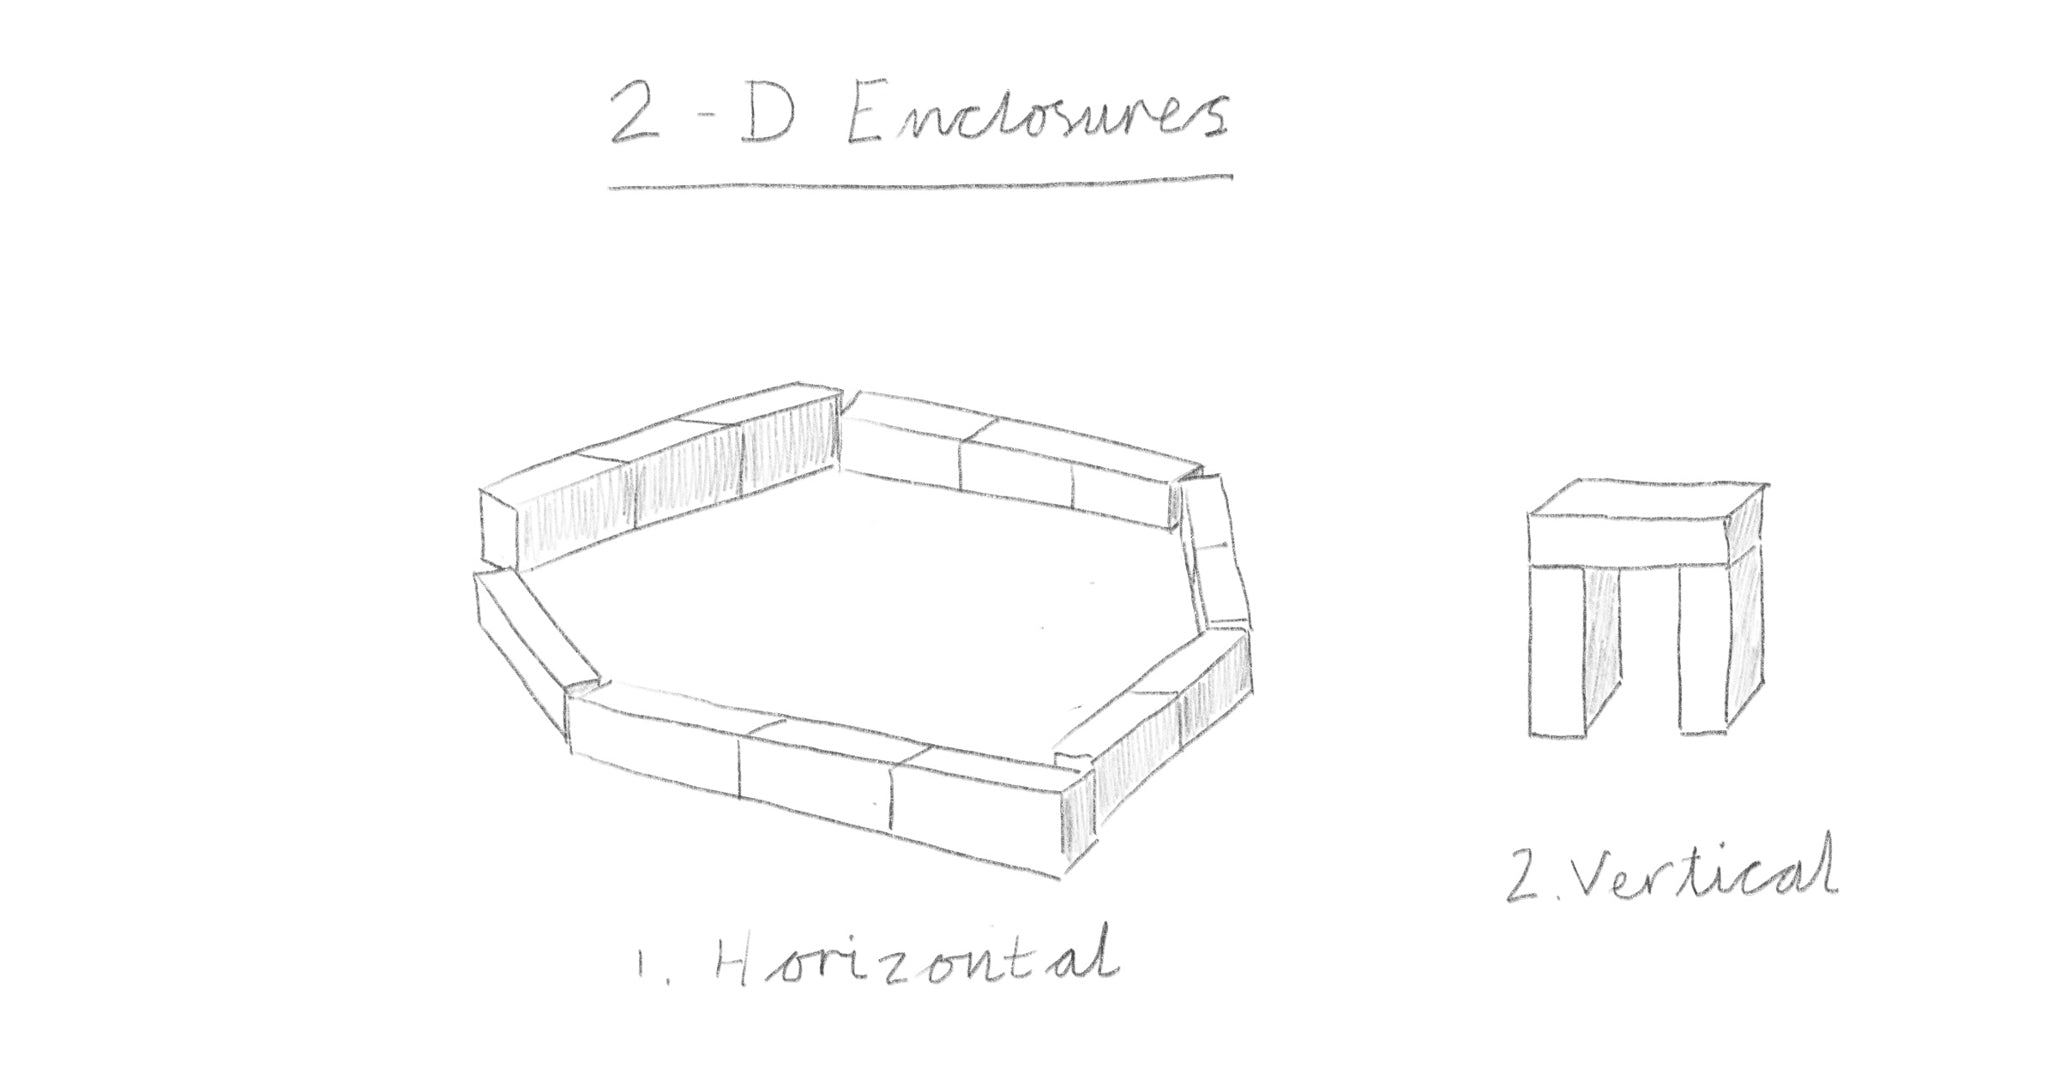 2-D enclosures in block play